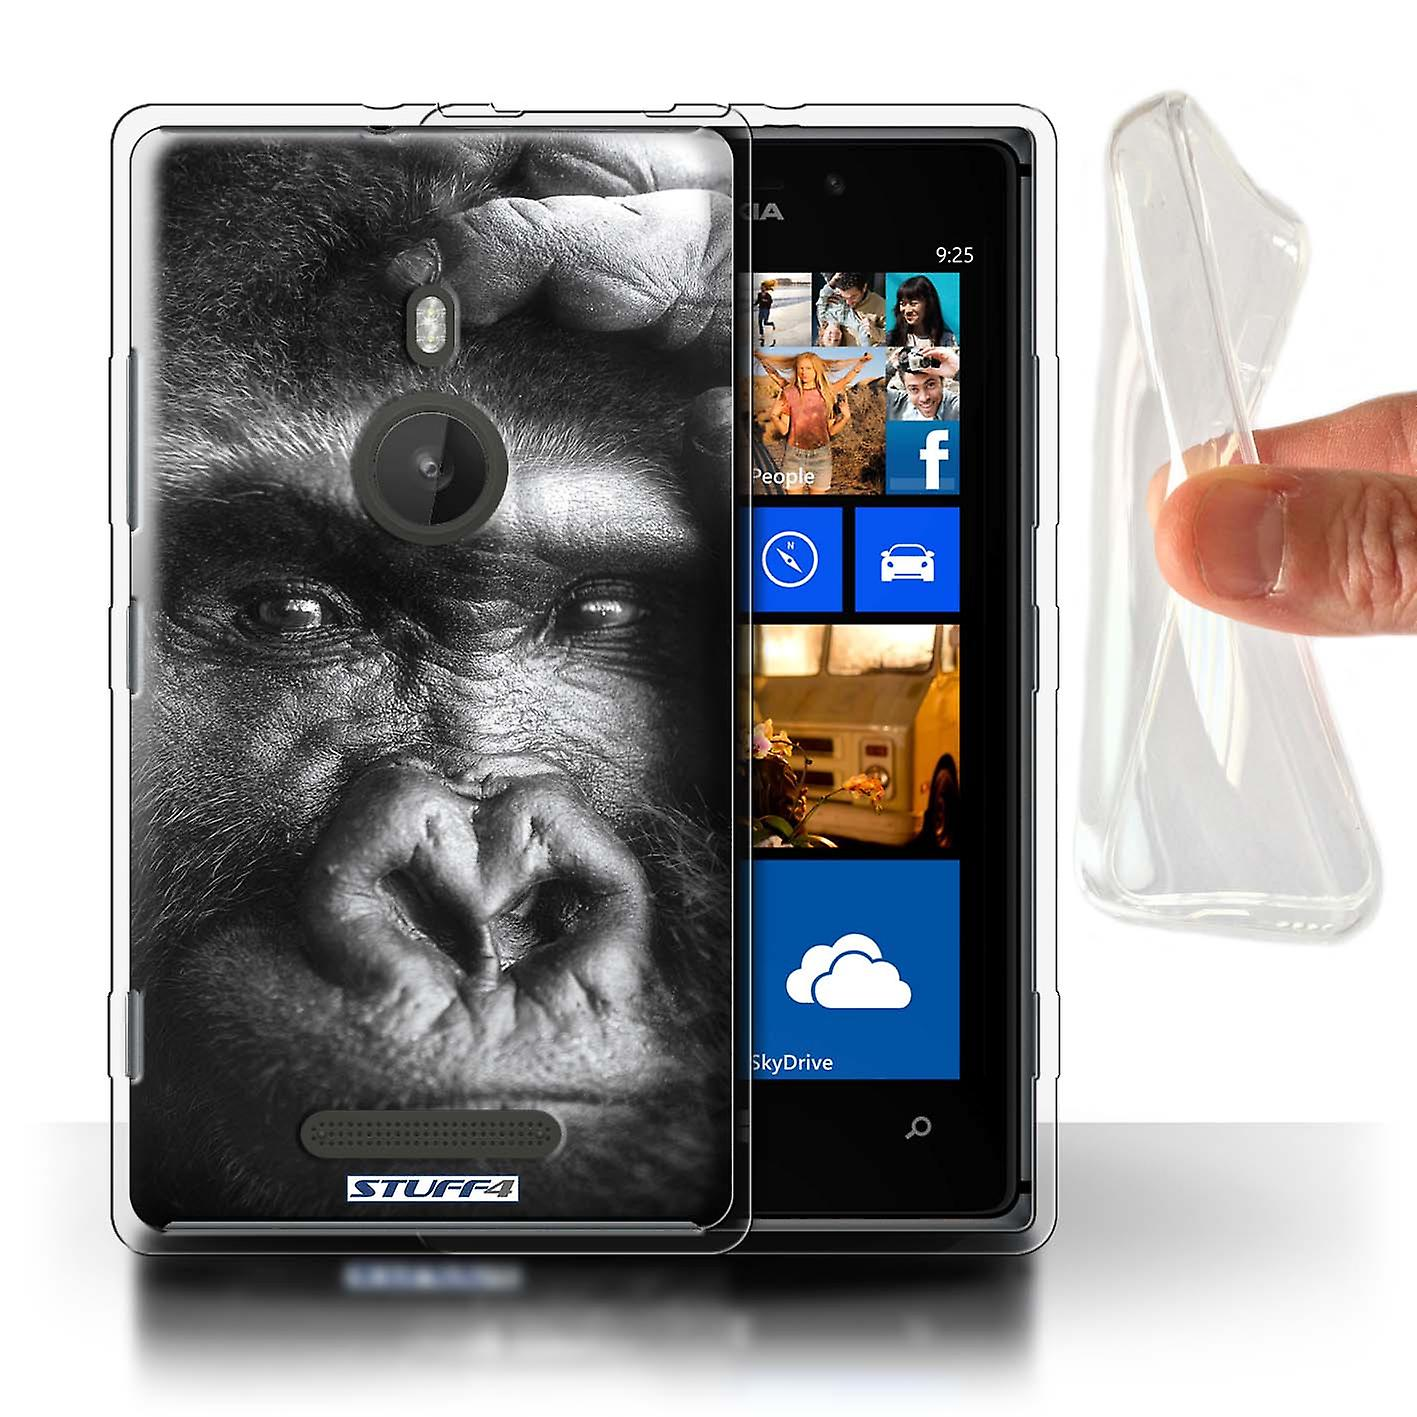 STUFF4 Gel TPU Case/Cover for Nokia Lumia 925/Gorilla/Monkey/Wildlife Animals